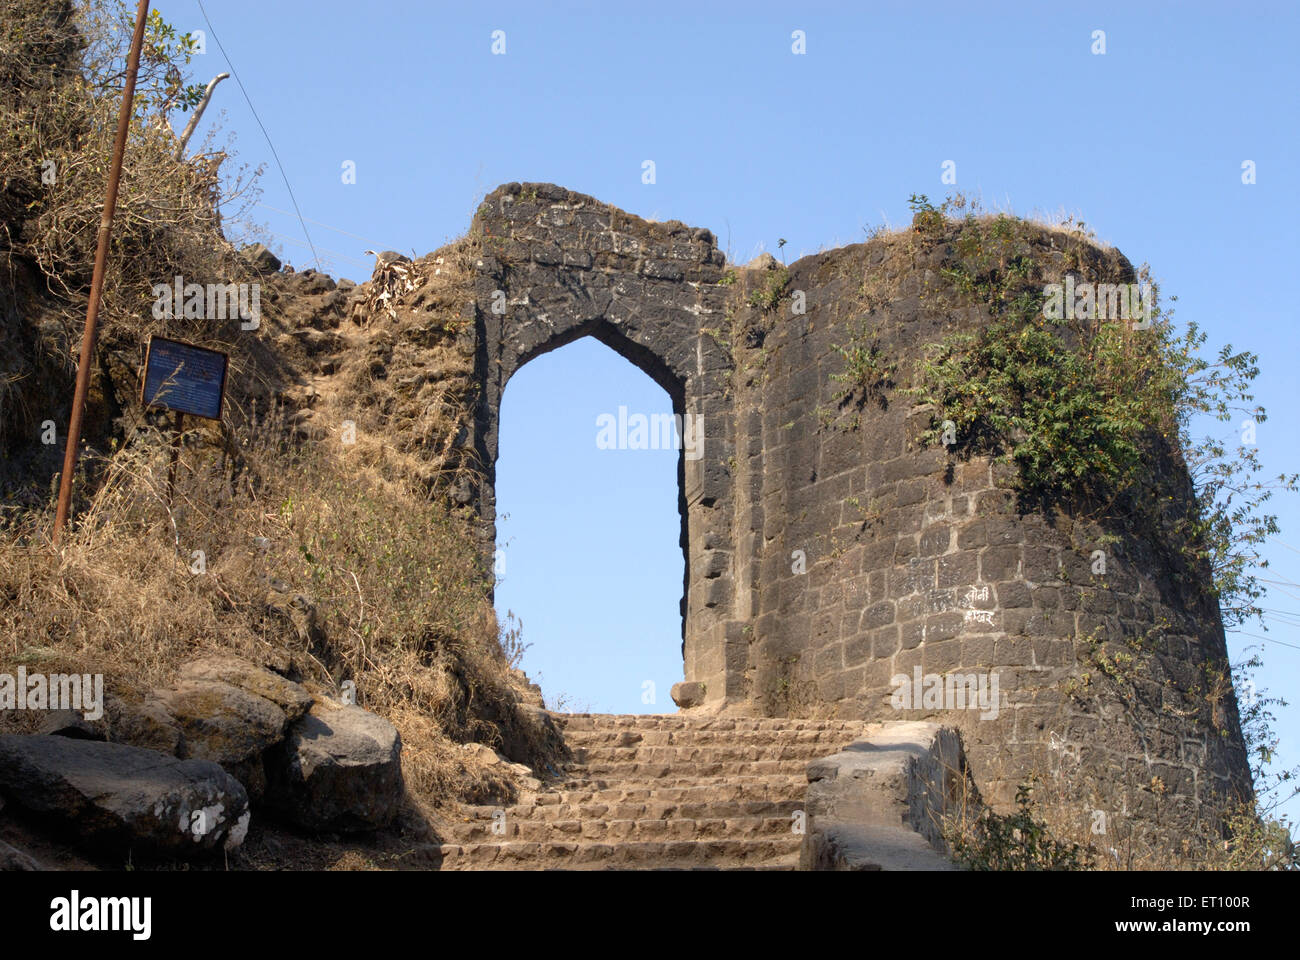 Stone steps gate and bastion darwaja sinhagarh sinhagad fort ; Pune ; Maharashtra ; India - Stock Image